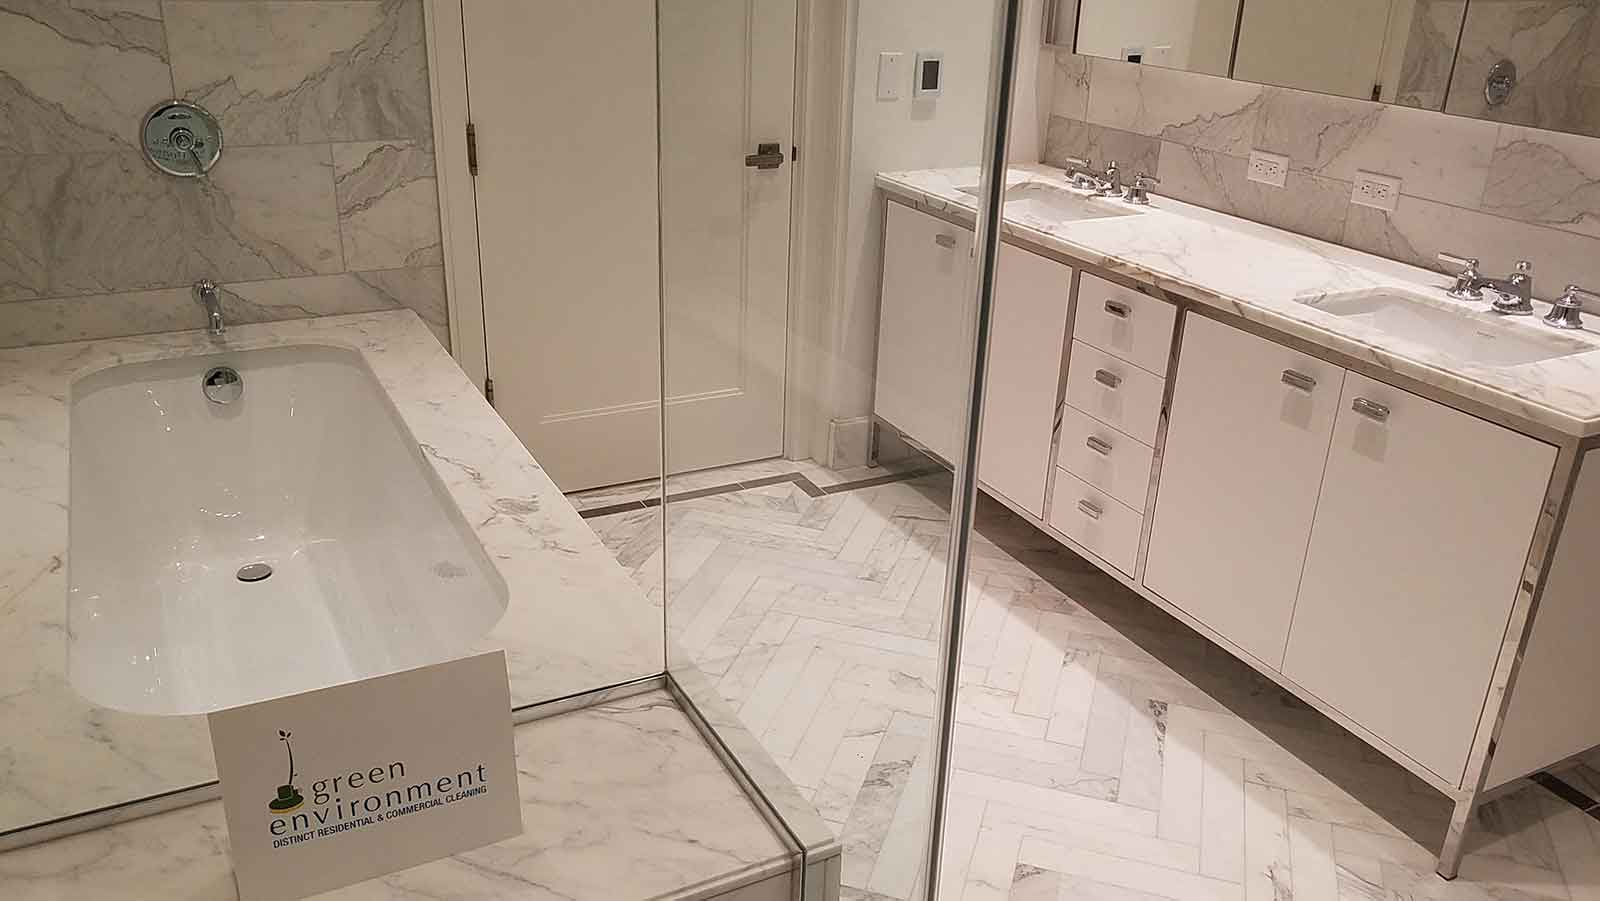 Marble bathroom vanity and tub after a post-construction cleaning by Post Green Cleaning.